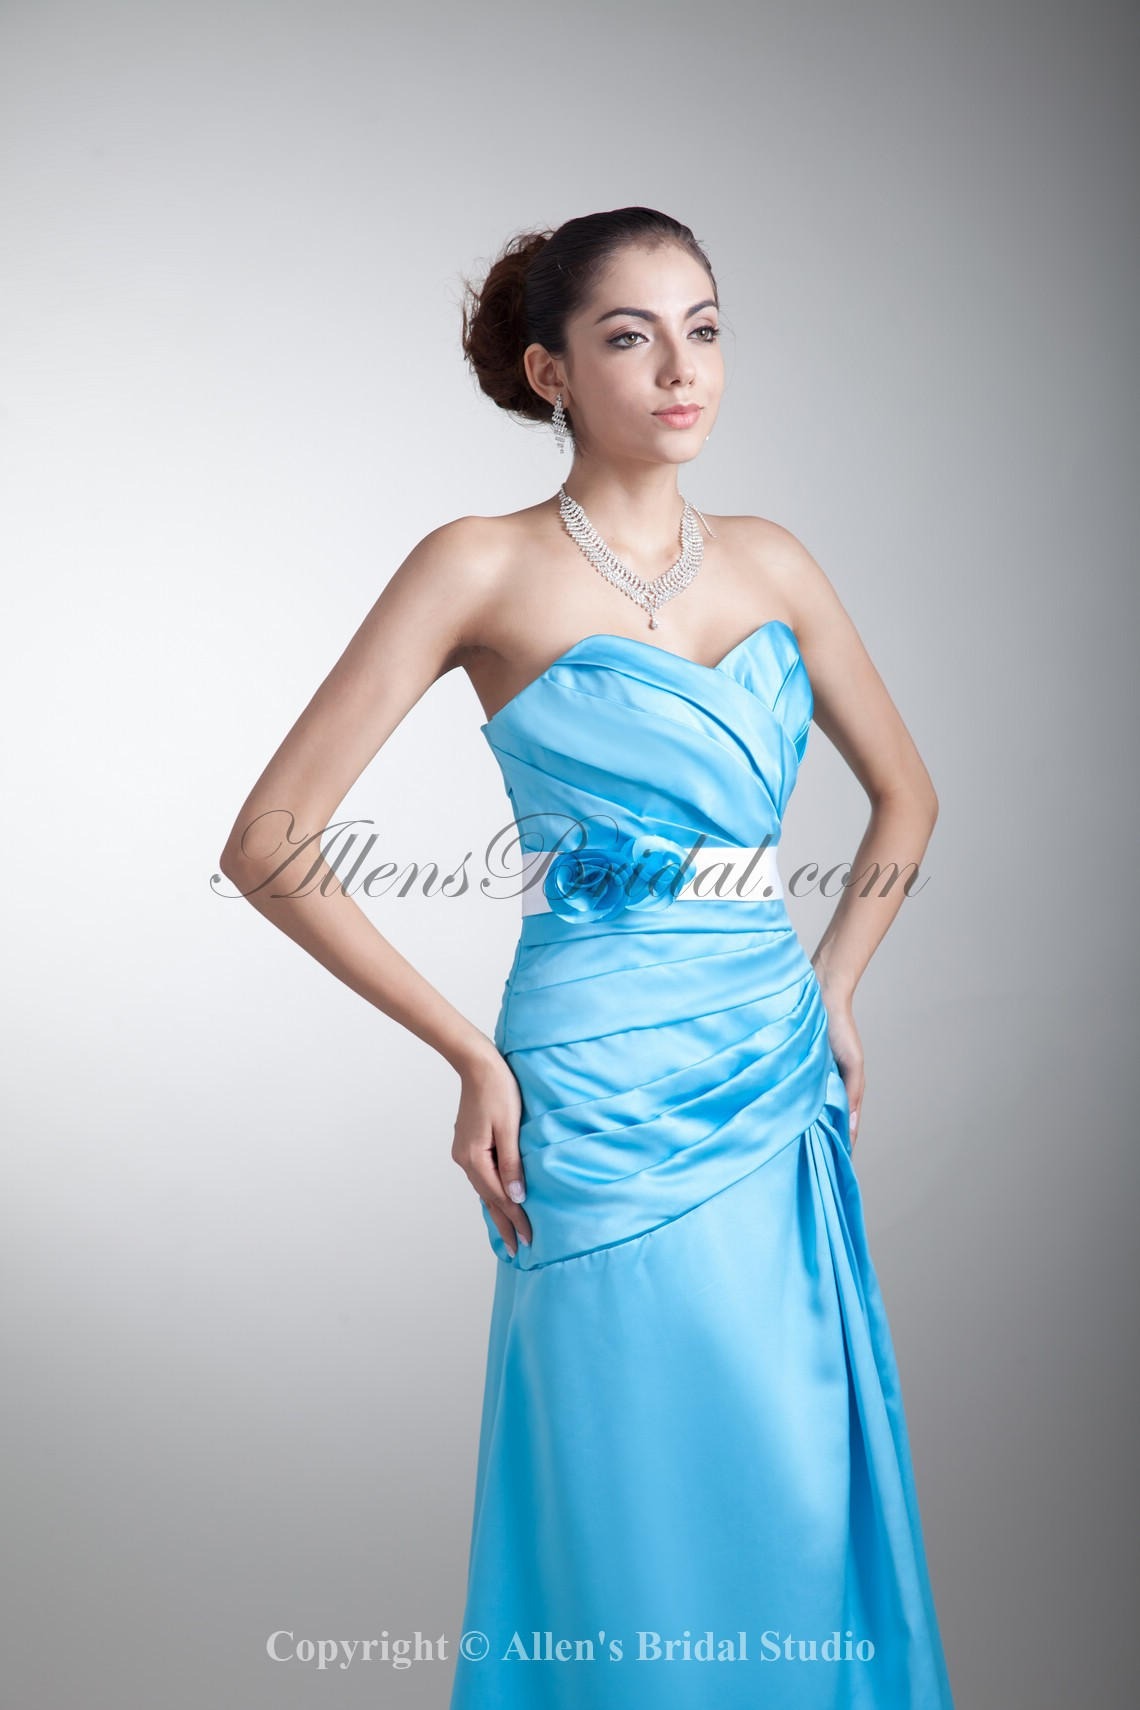 /757-6066/satin-sweetheart-neckline-floor-length-a-line-flowers-prom-dress.jpg